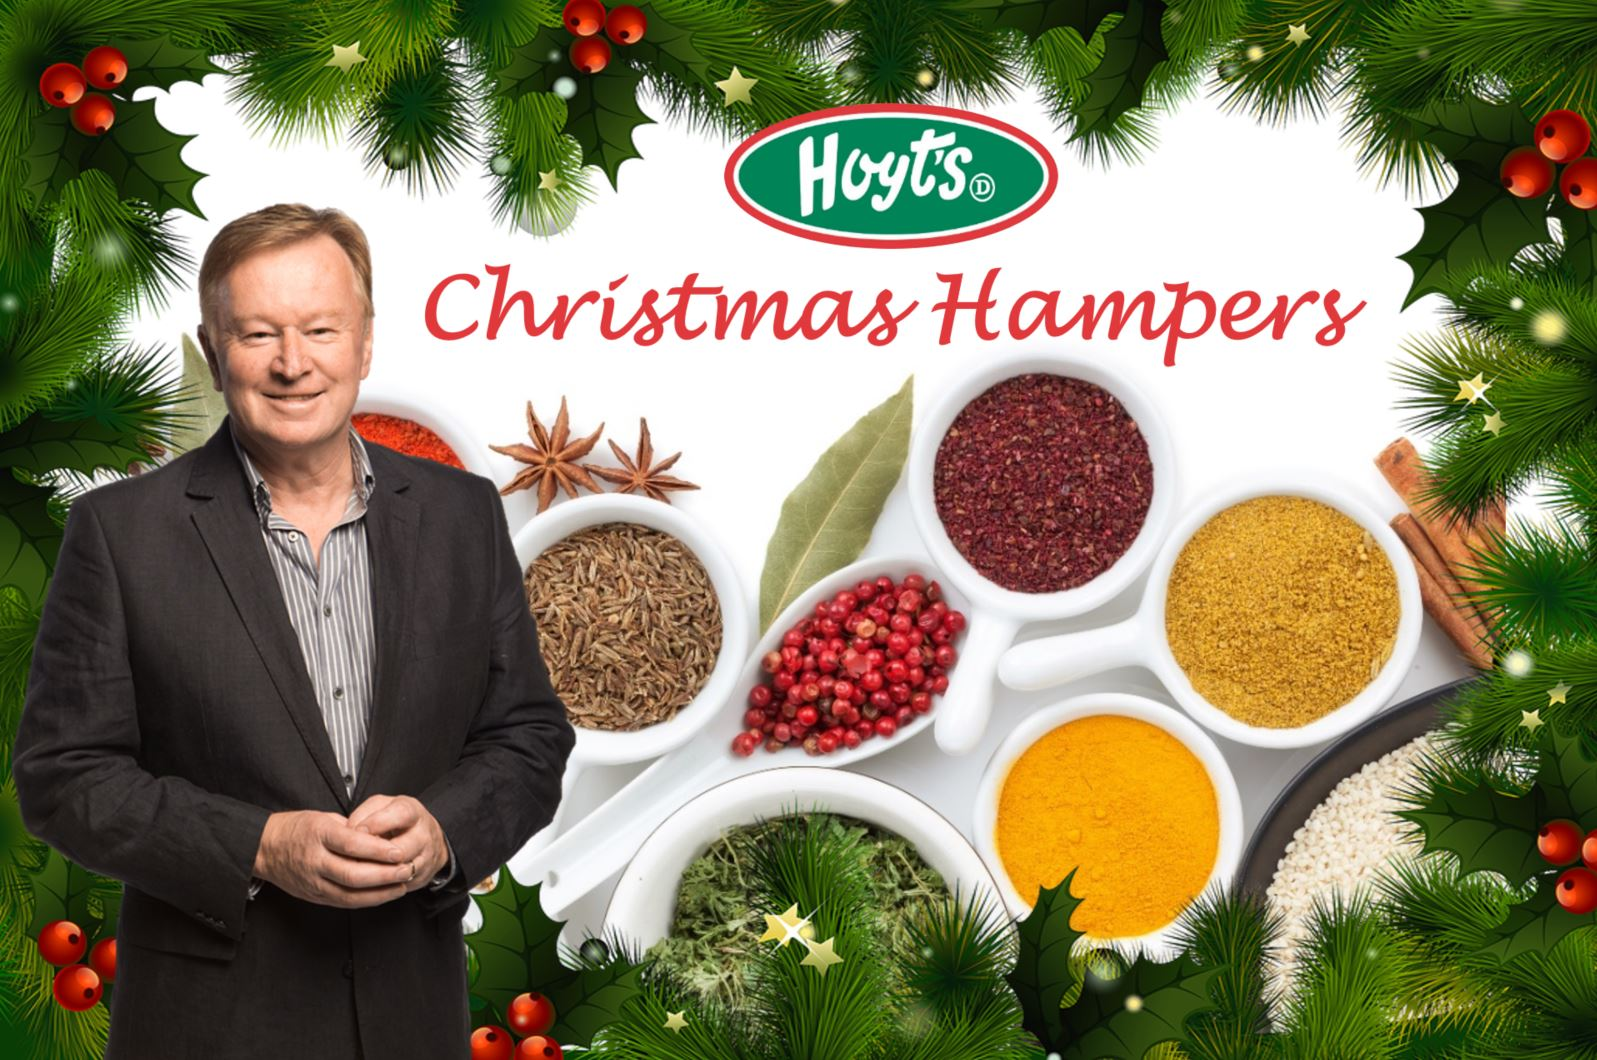 Win a Hoyt's Christmas Hamper!